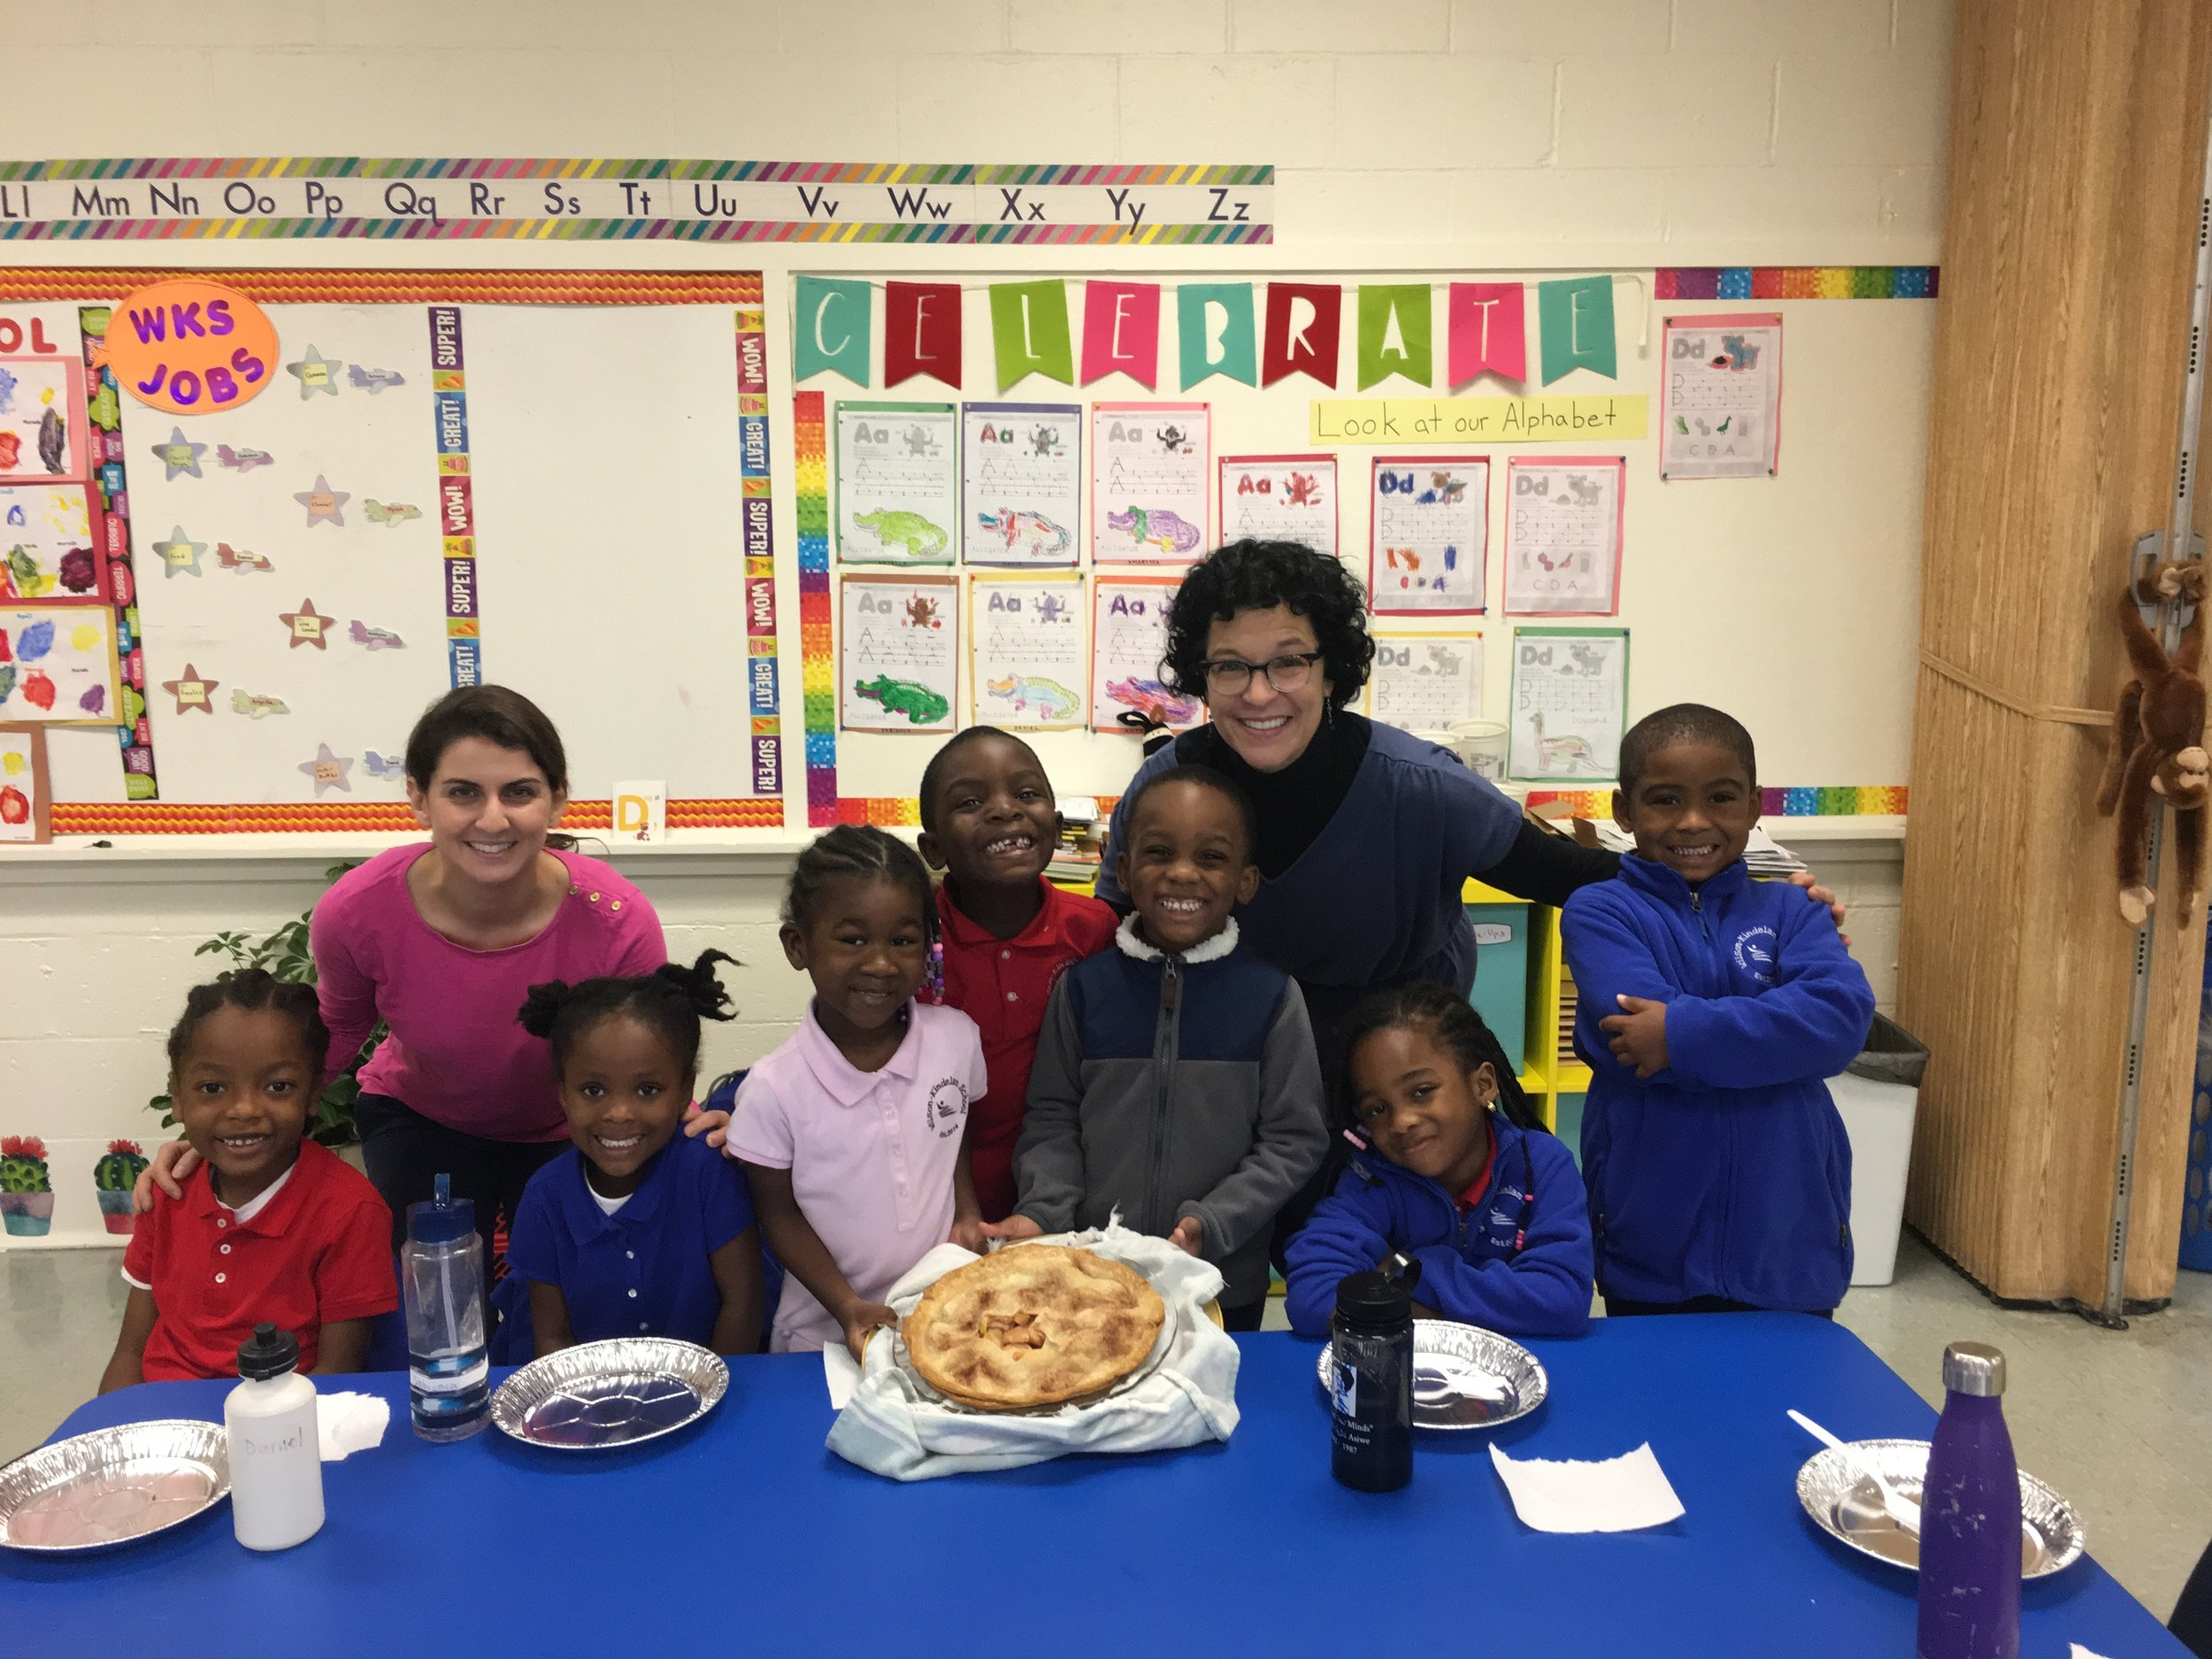 During Language Arts, students listened to a story about apple pie. The next day they were able to try a slice thanks to Ms. V. As delicious as it looked, not everyone was a fan of the sweet tasting dessert.